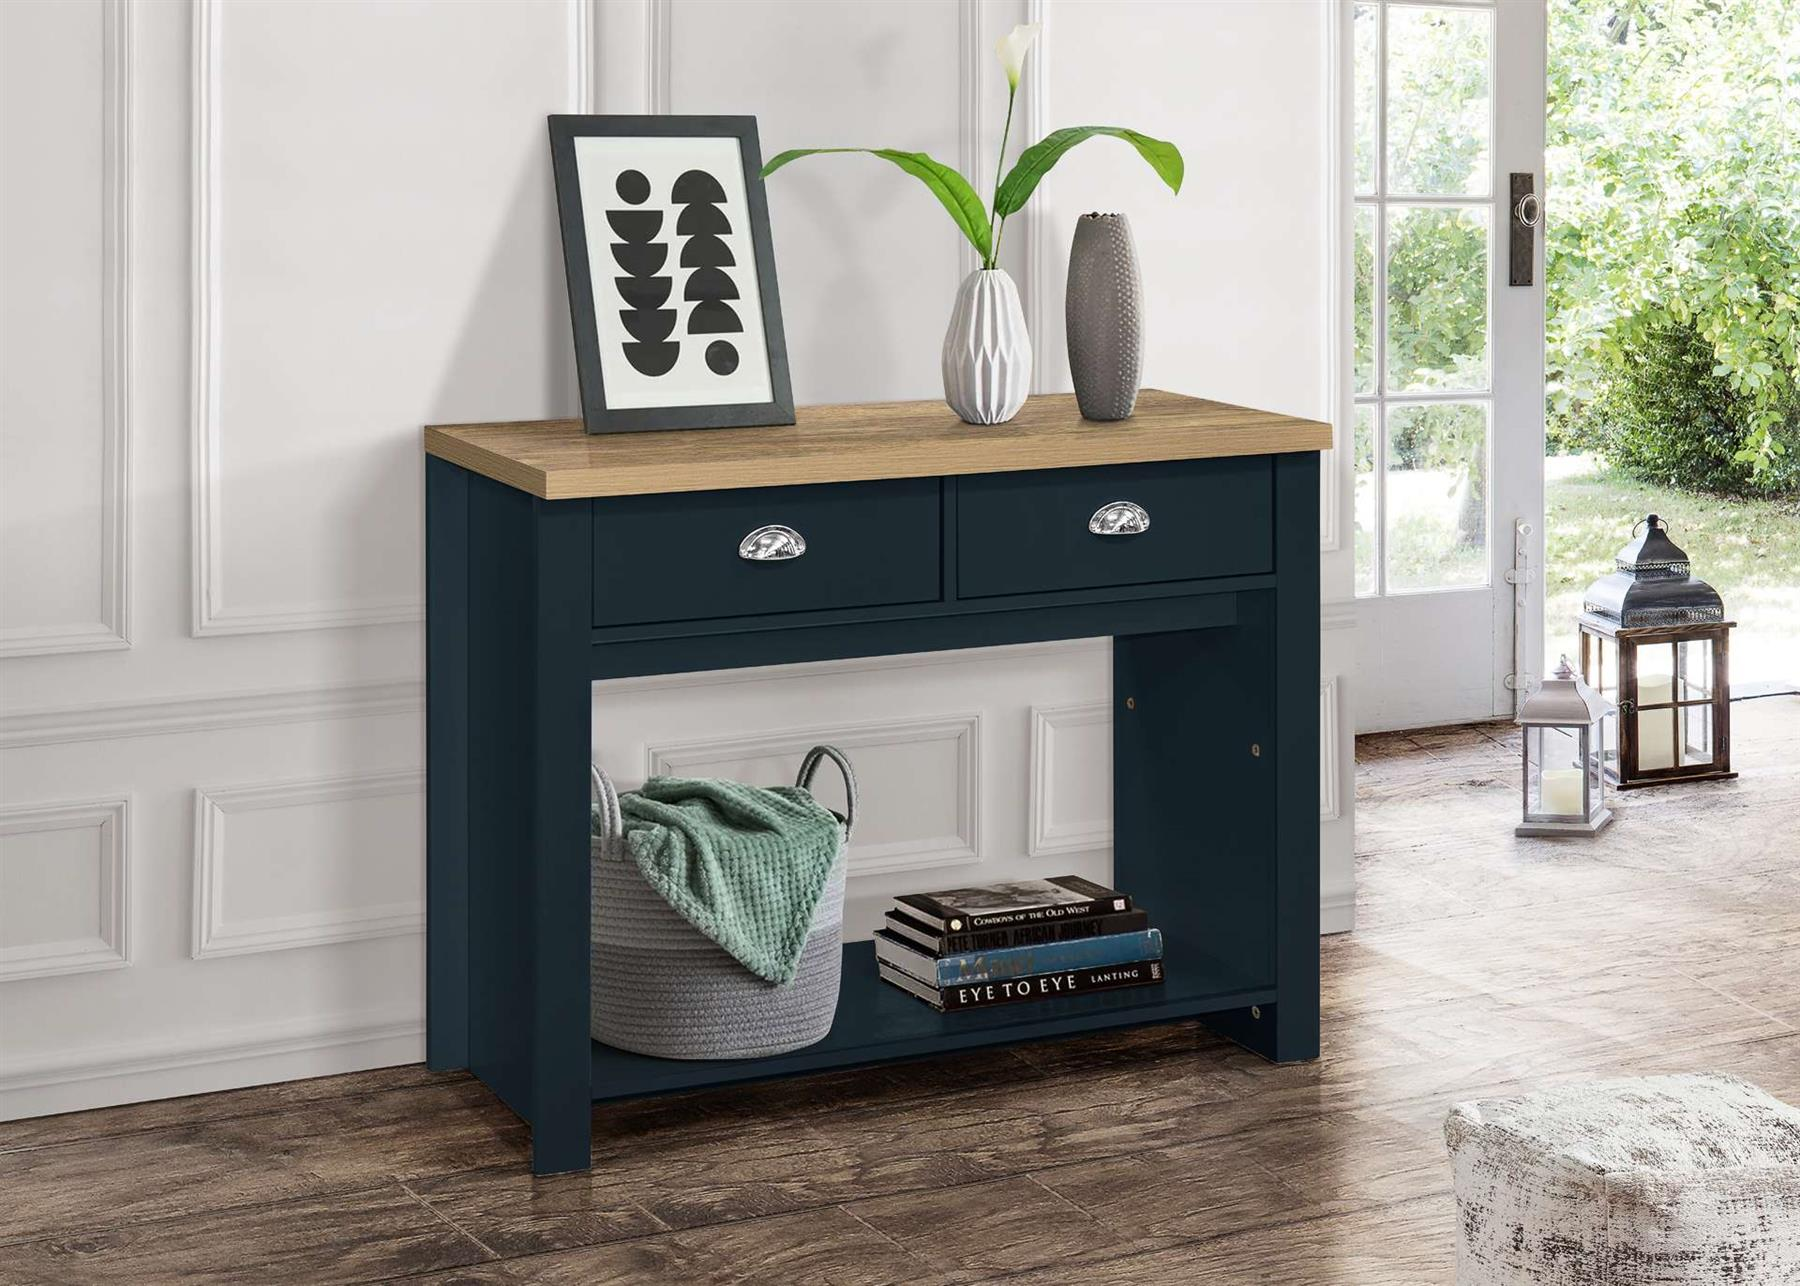 Birlea Highgate 2 Drawer Console Table Navy Blue & Oak Farmhouse Shabby Chic